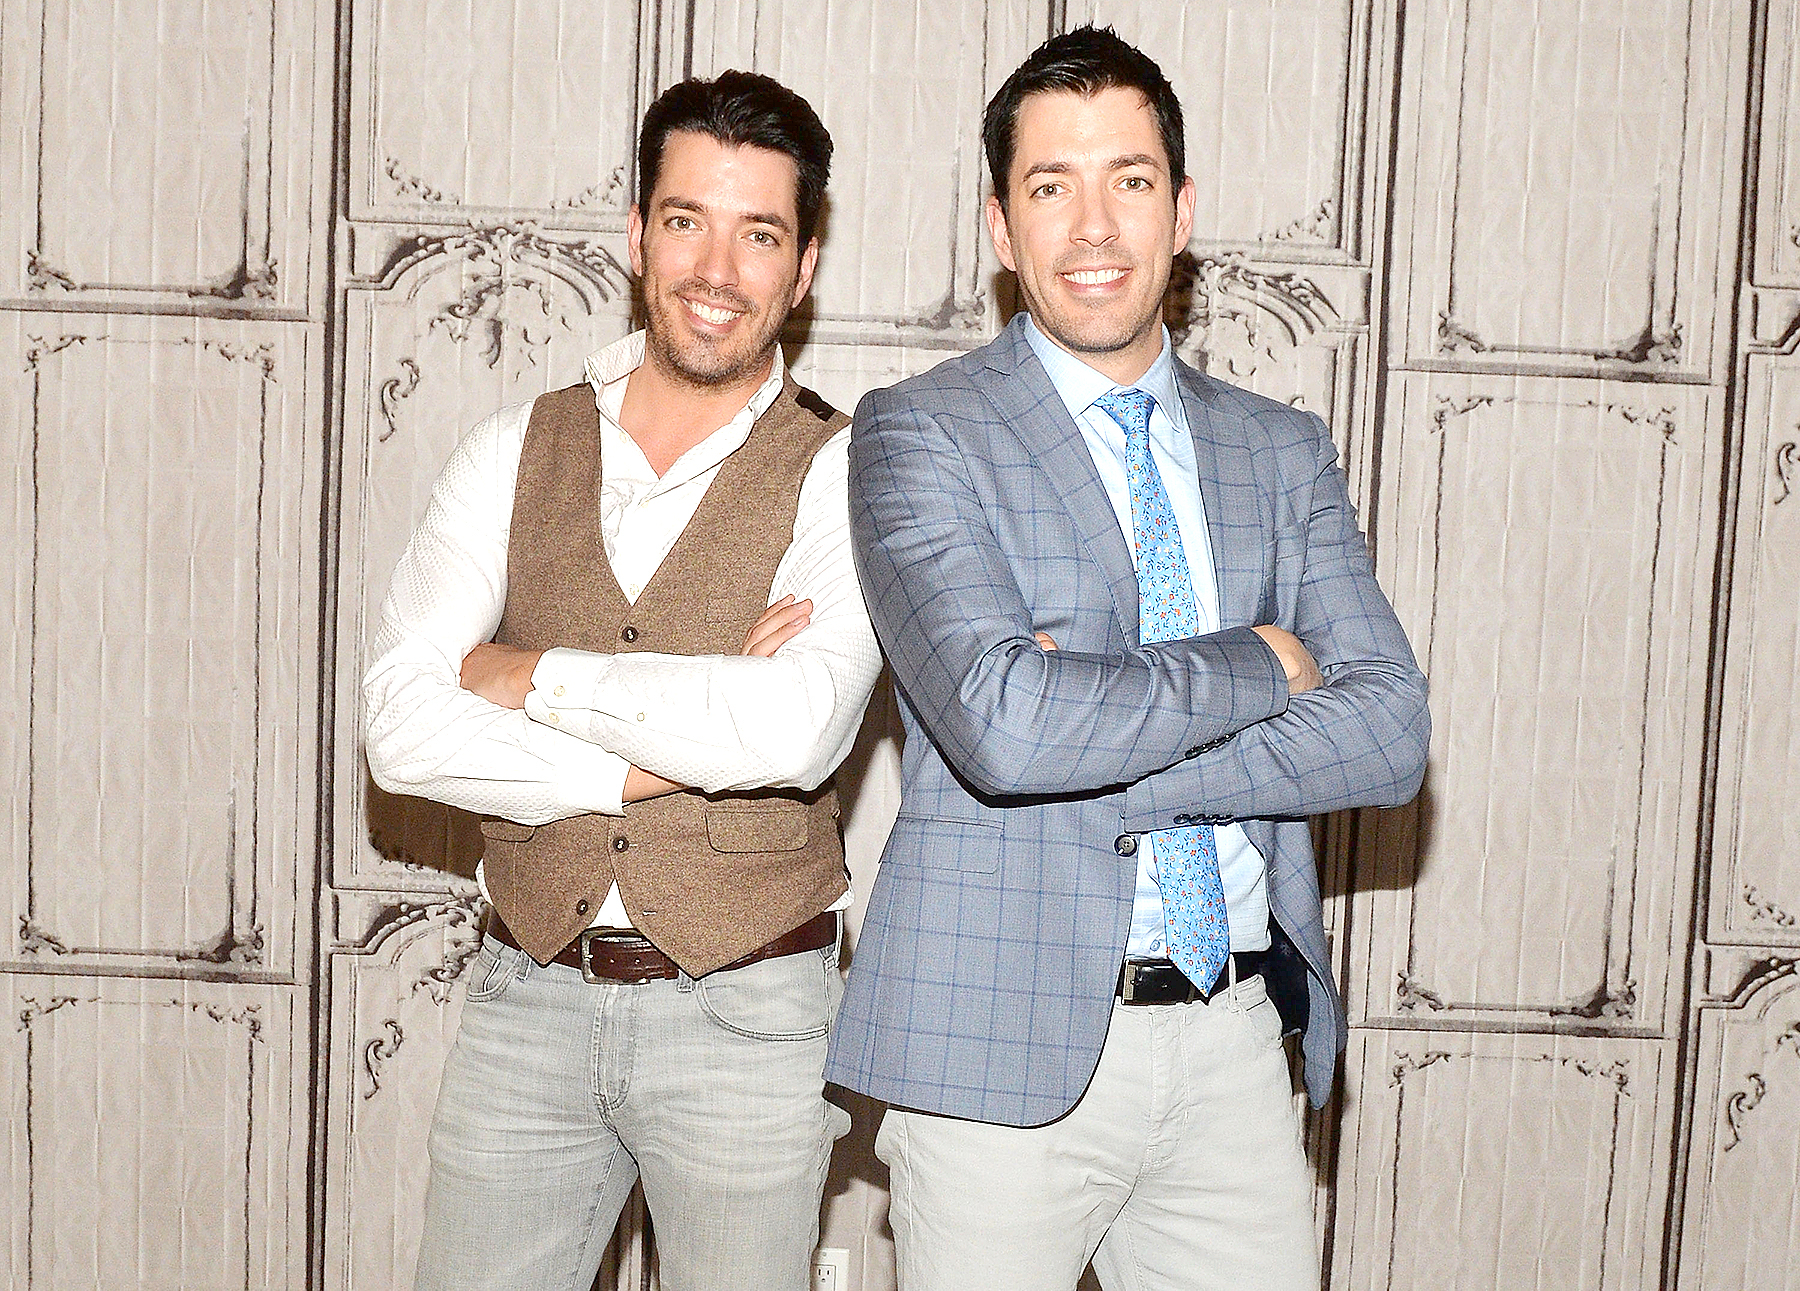 Who are the property brothers hookup